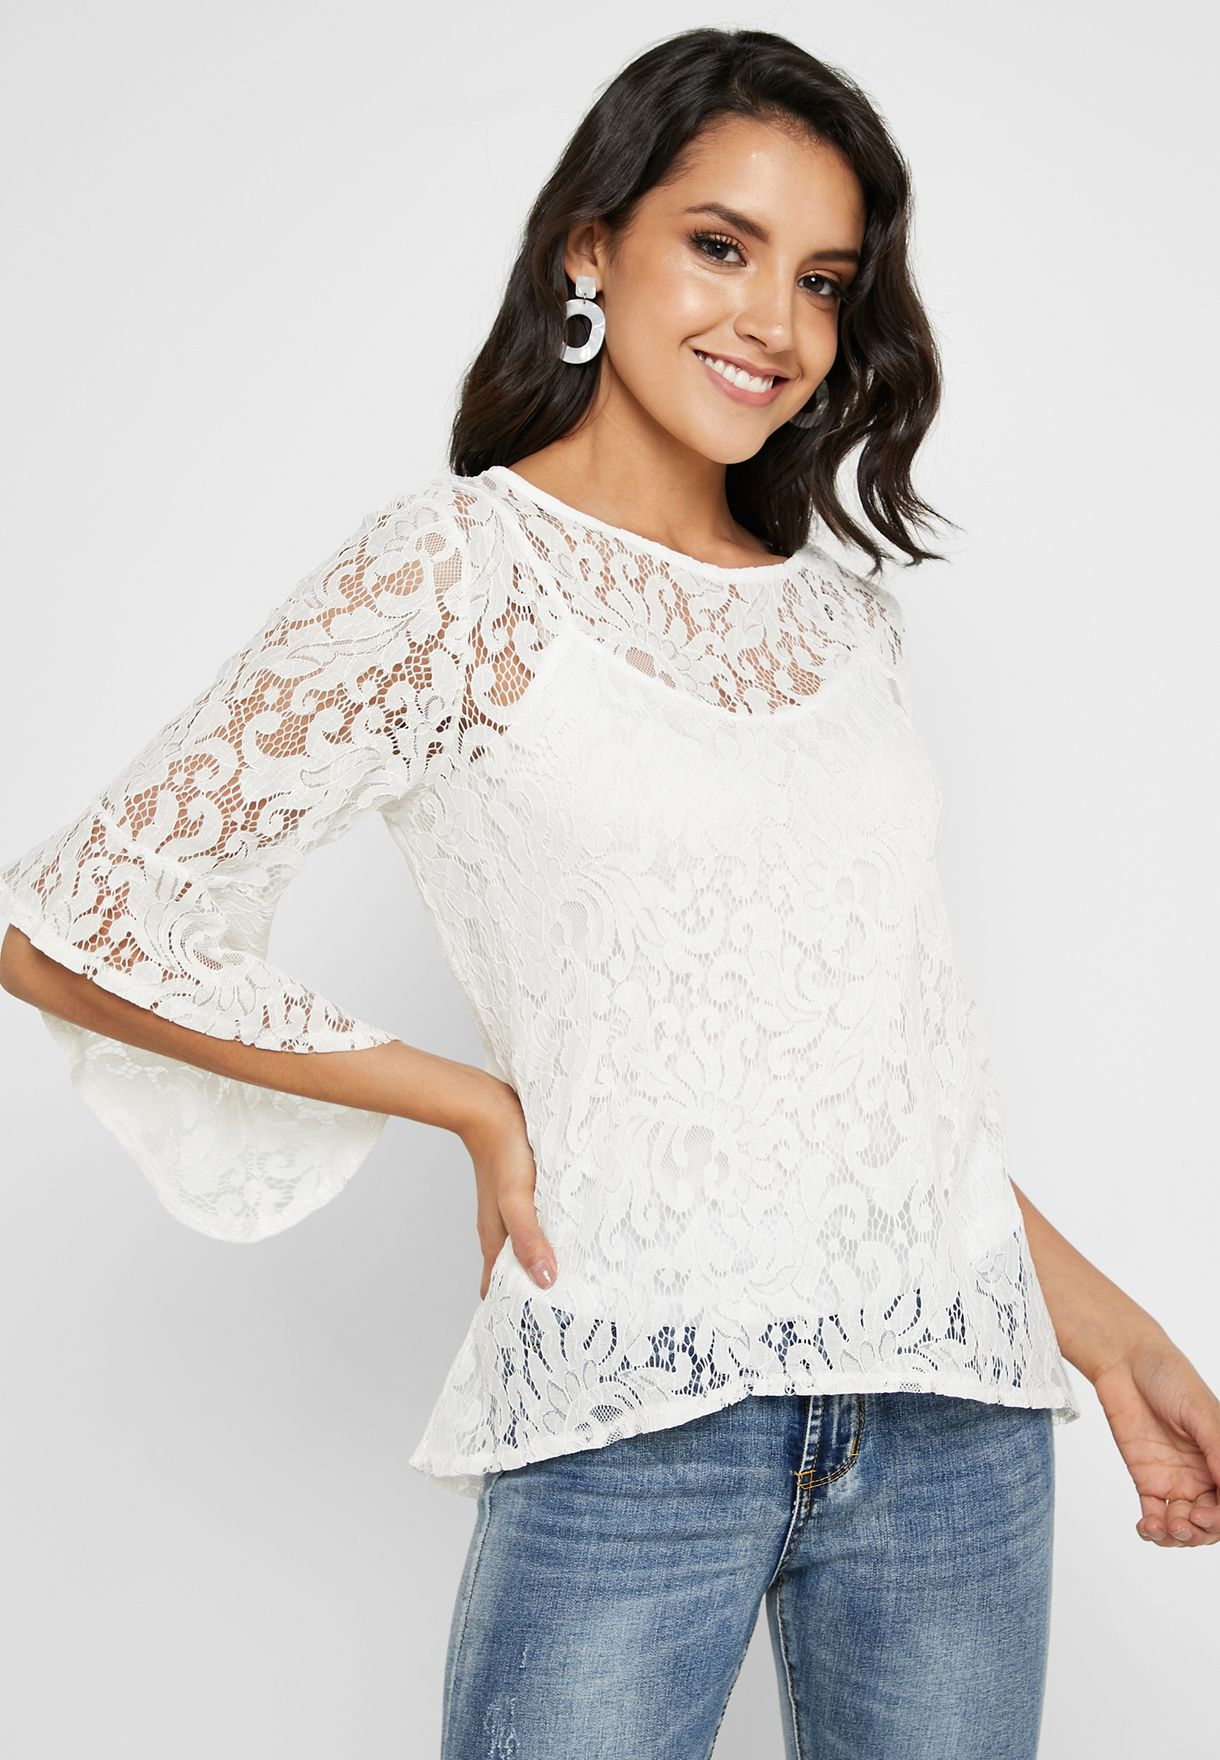 4be7a1be14e Shop Quiz white Crochet Lace Detail Top 100019022 for Women in ...